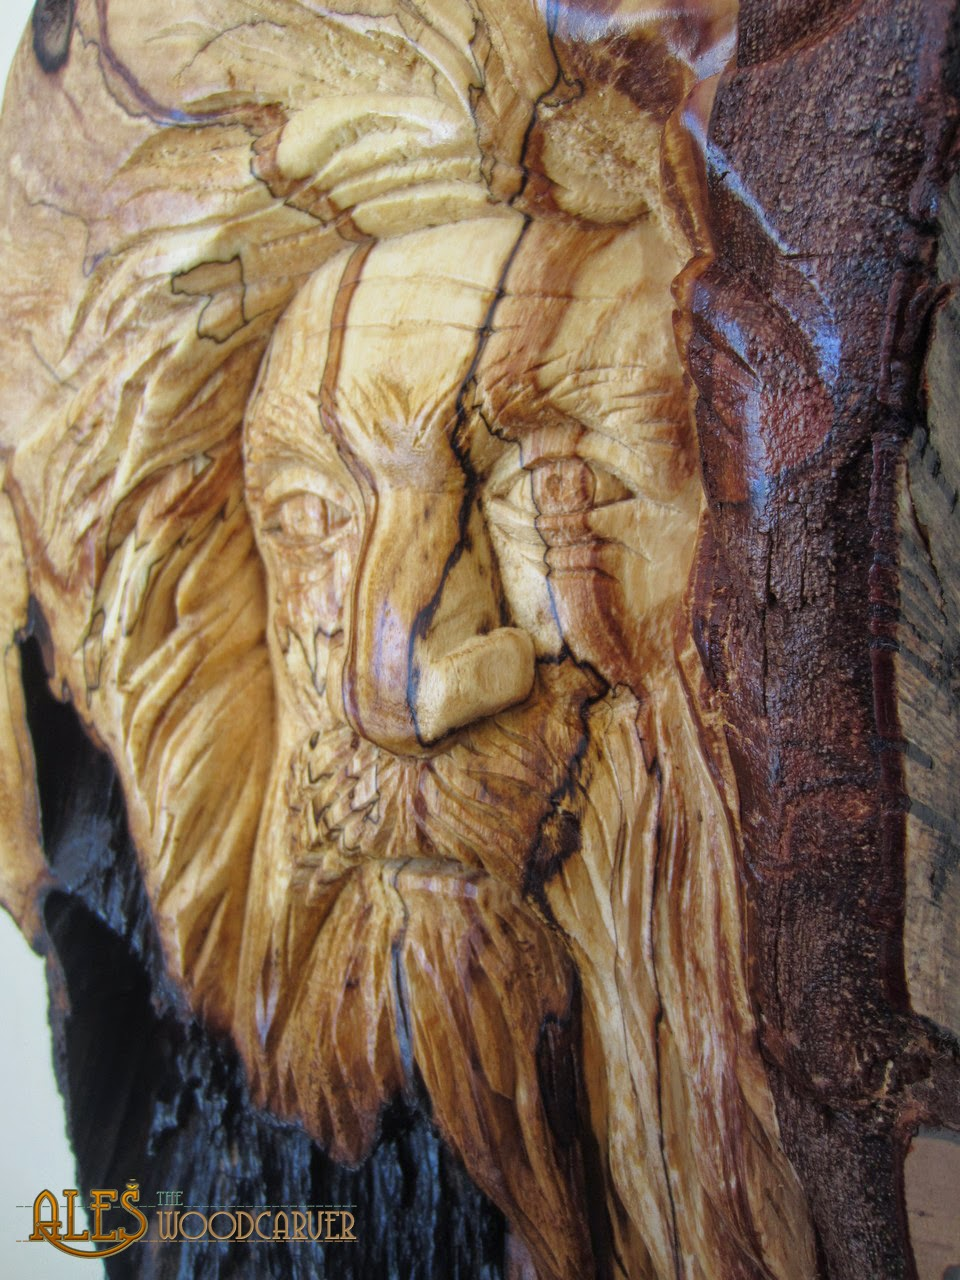 Ales the woodcarver woodspirit in spalted birch